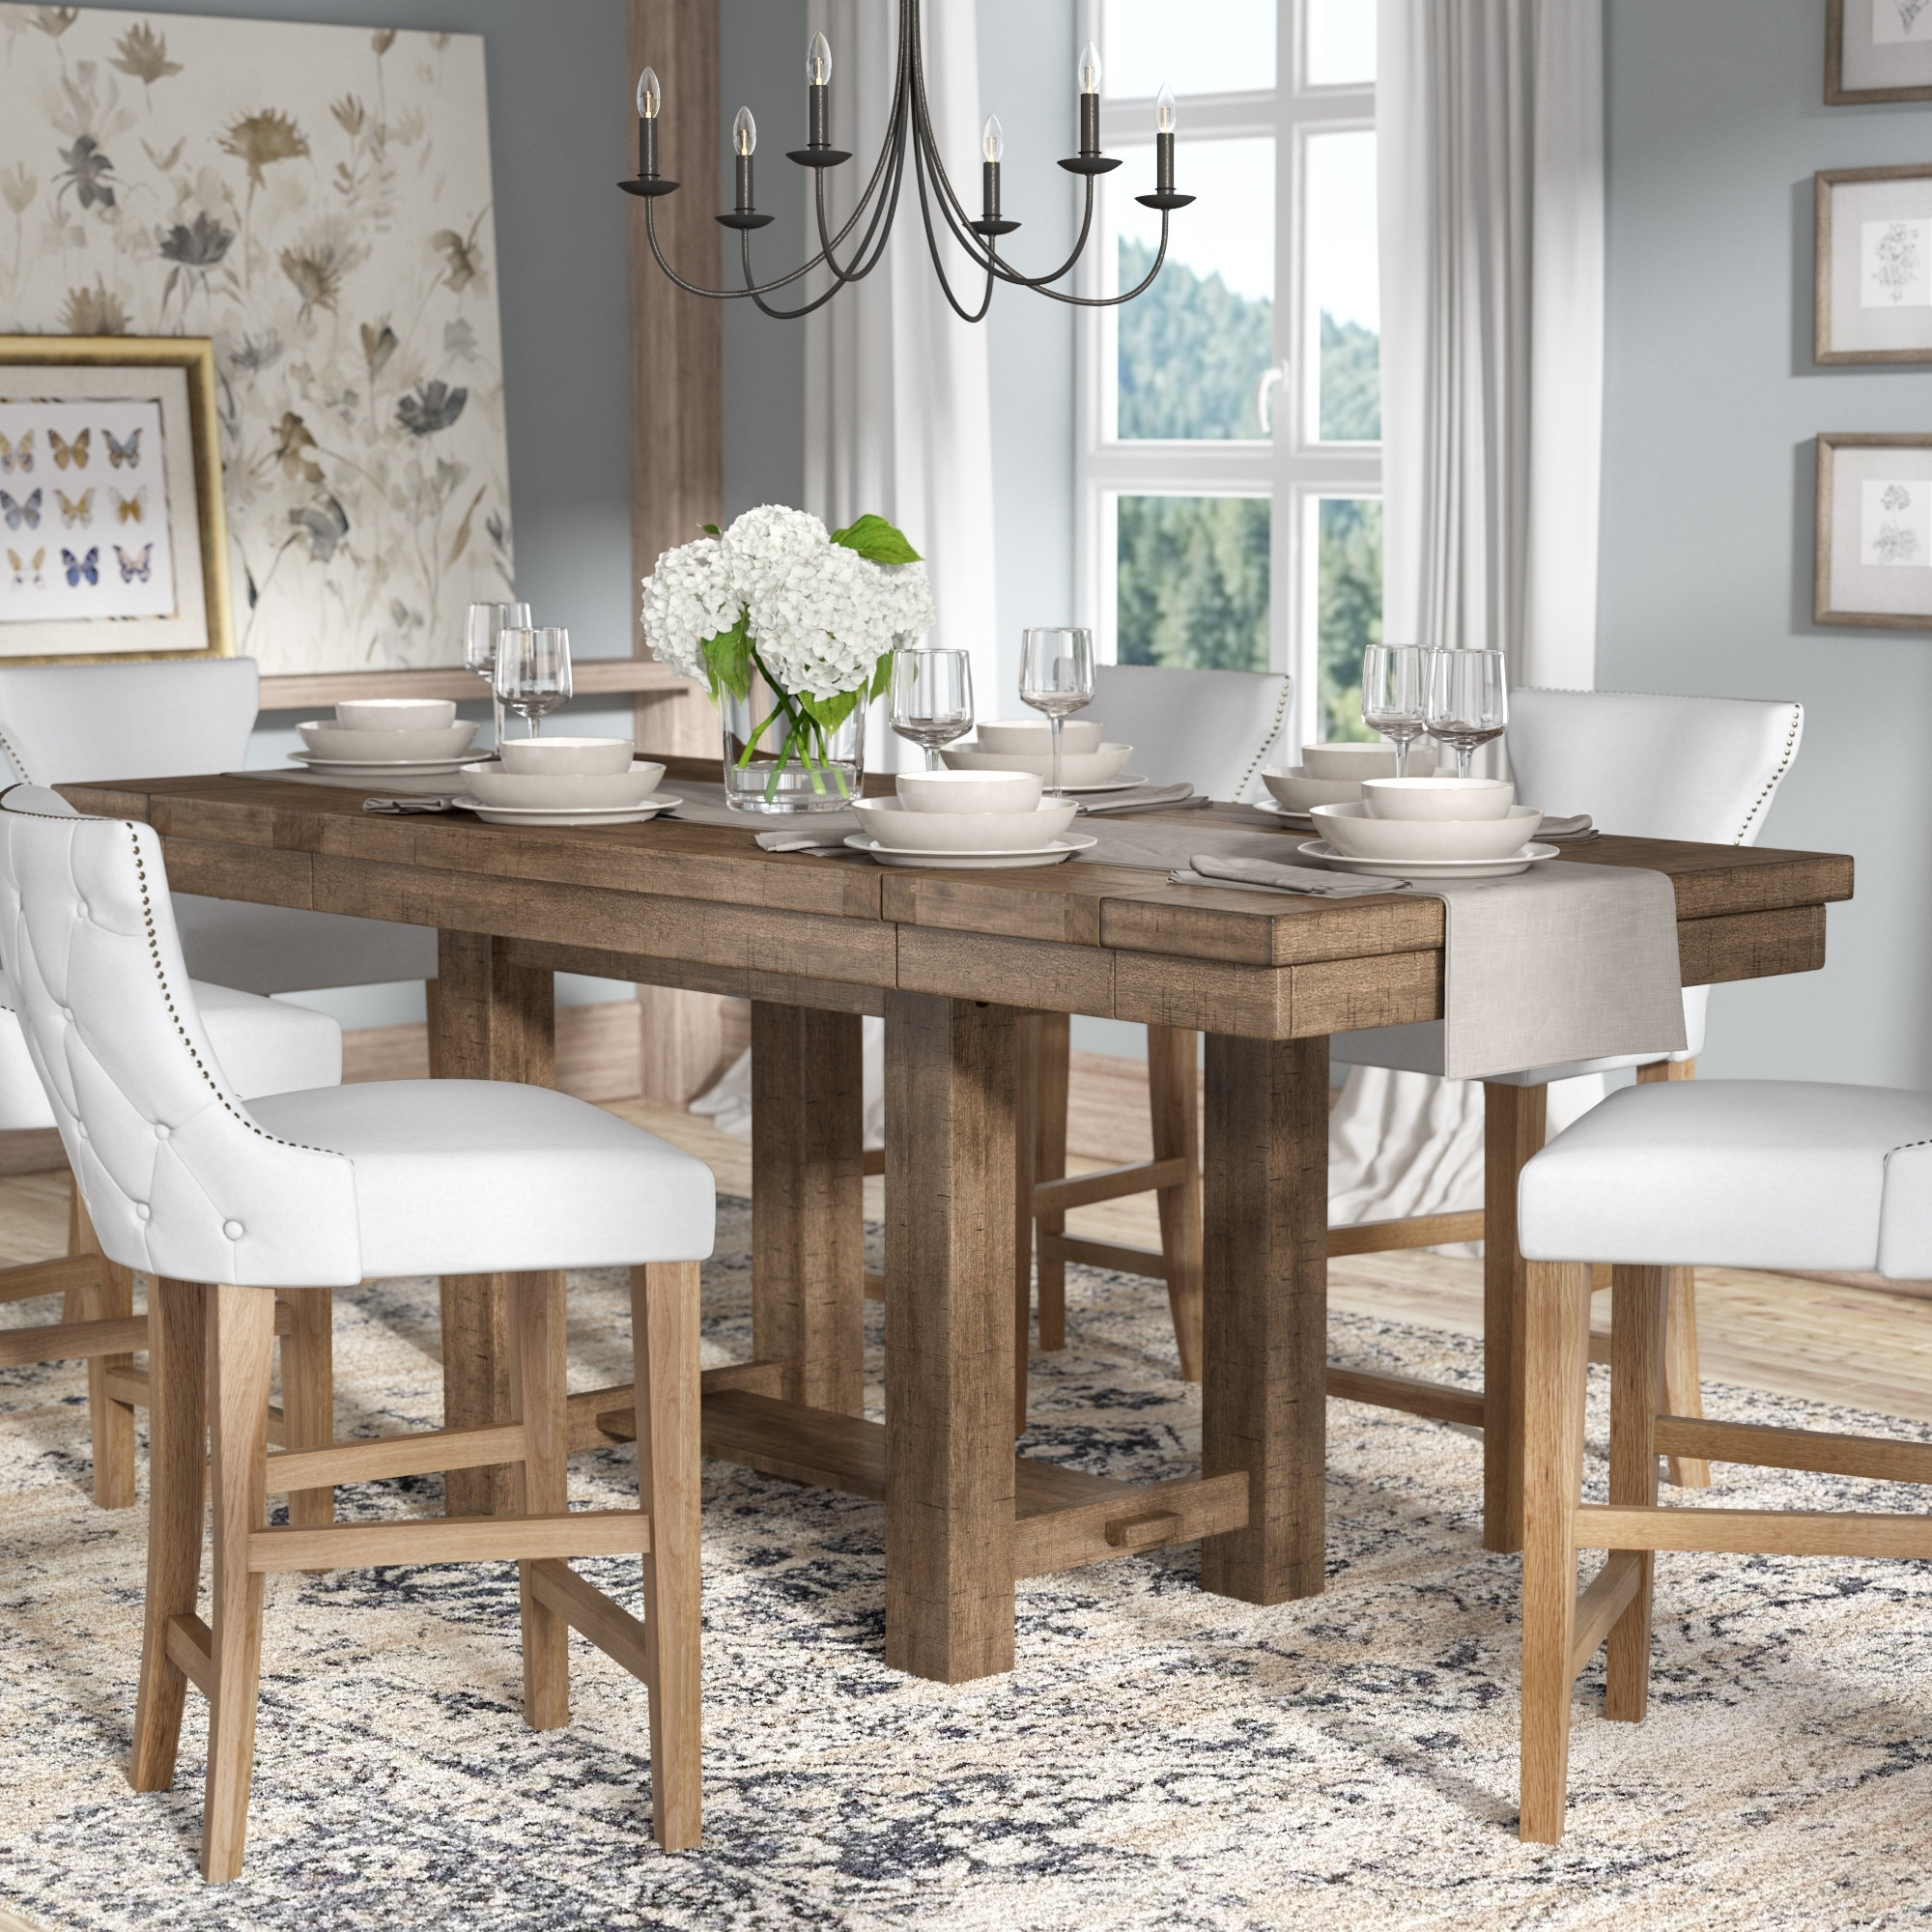 Extending Rectangular Dining Tables Within Widely Used Extending Dining Room Sets Stunning Hillary Rectangular Counter (View 13 of 25)